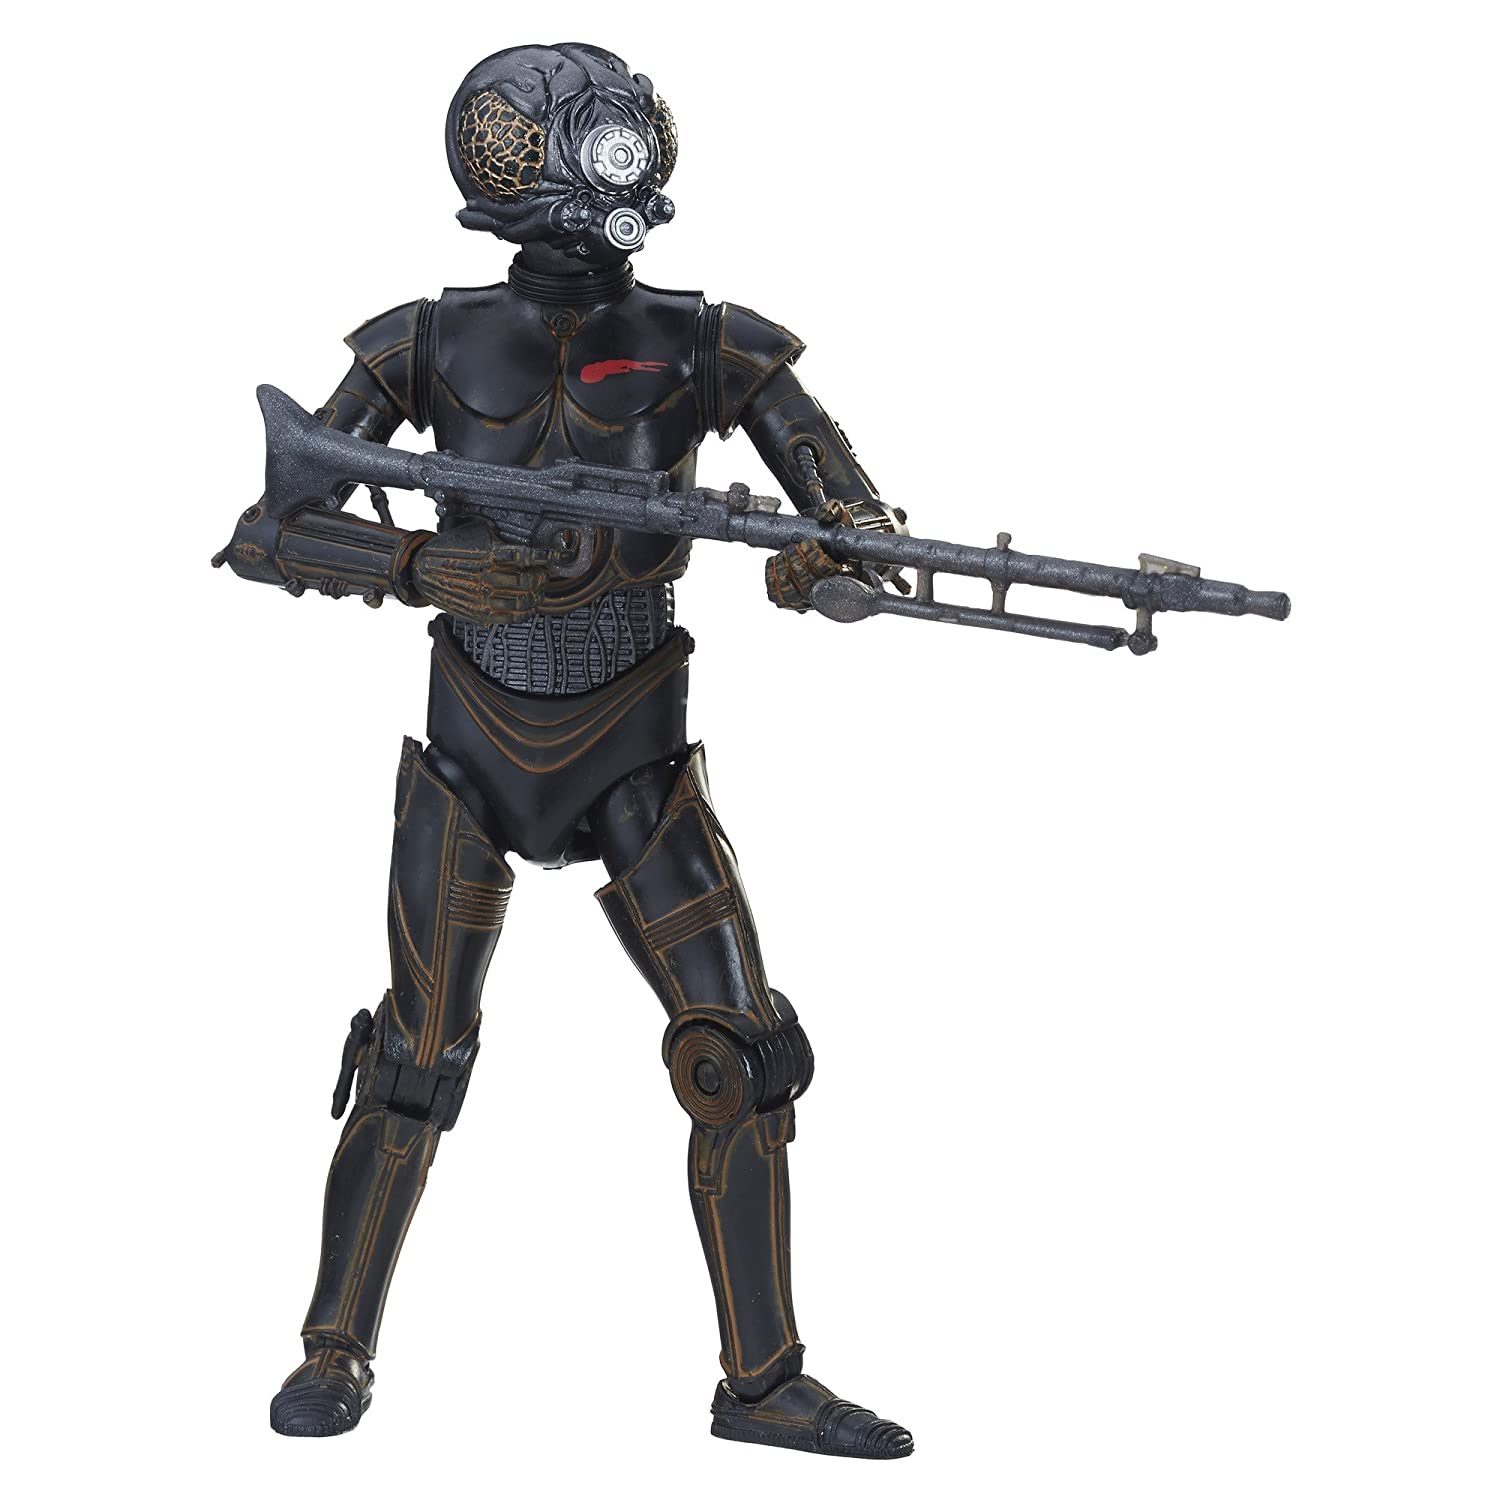 Star Wars The Black Series 4-LOM 6-inch-Scale Figure Hasbro Canada Corporation E1207